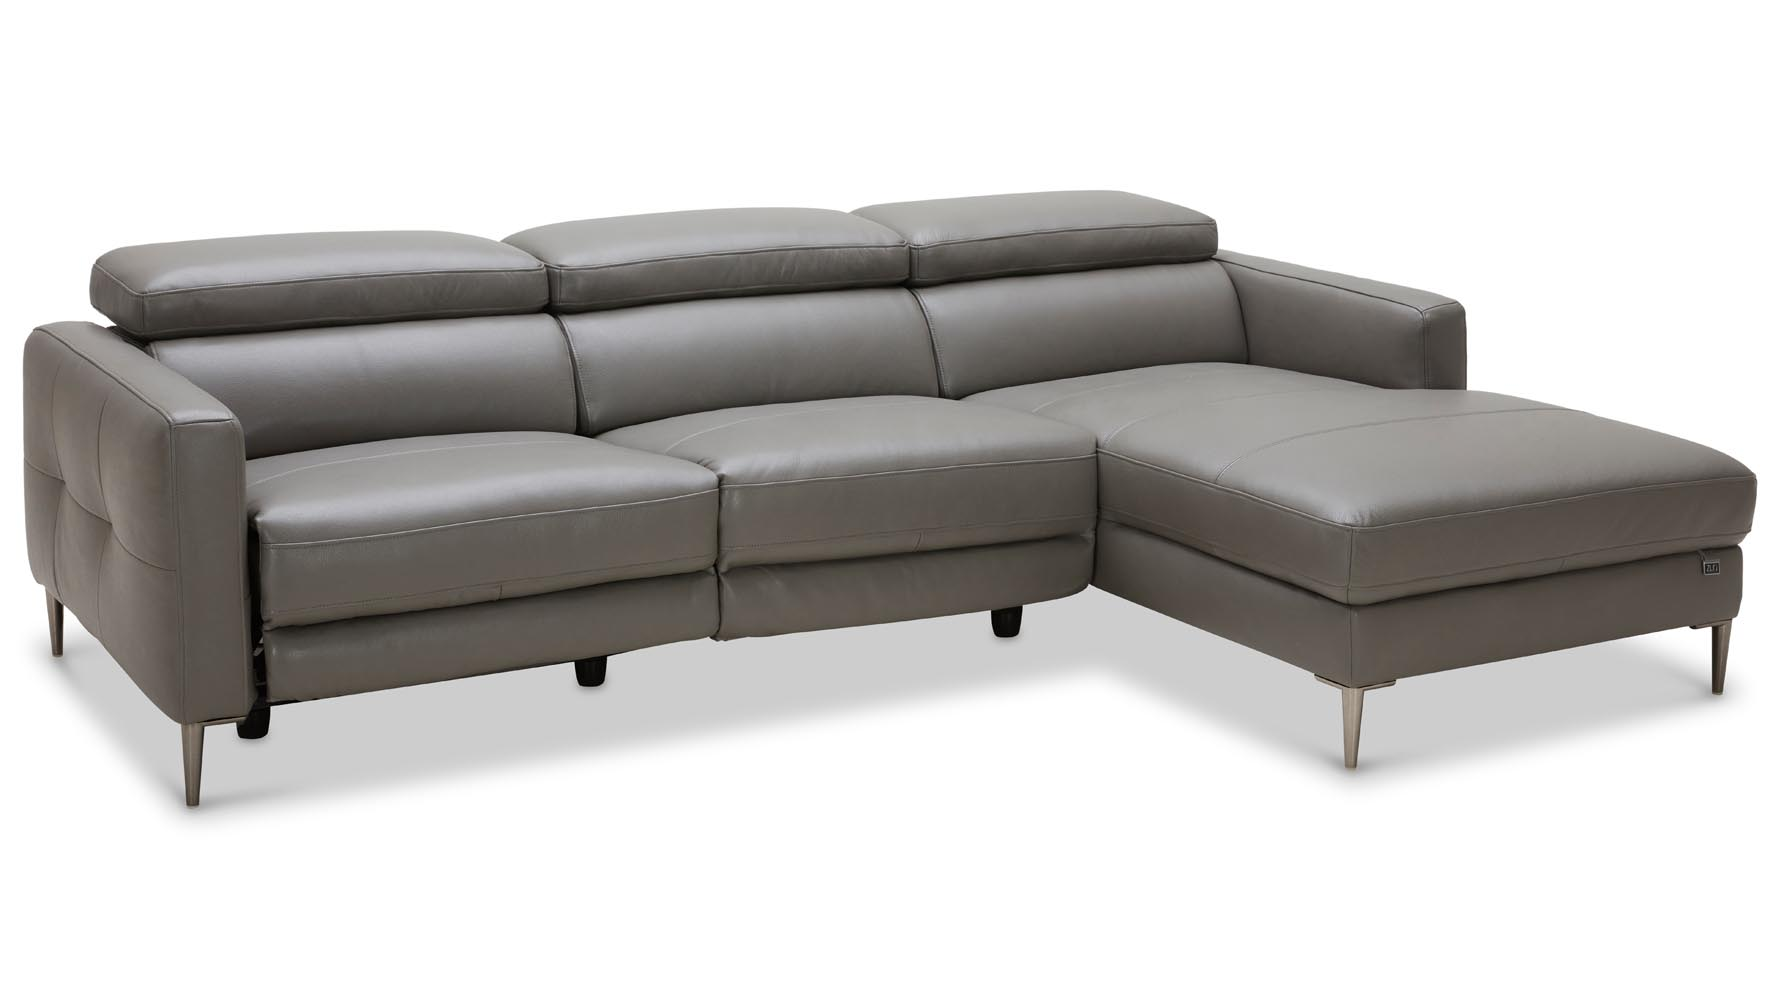 Recliner Modern Modern Grey Leather Reno Sectional With Power Recliner Seat  Zuri